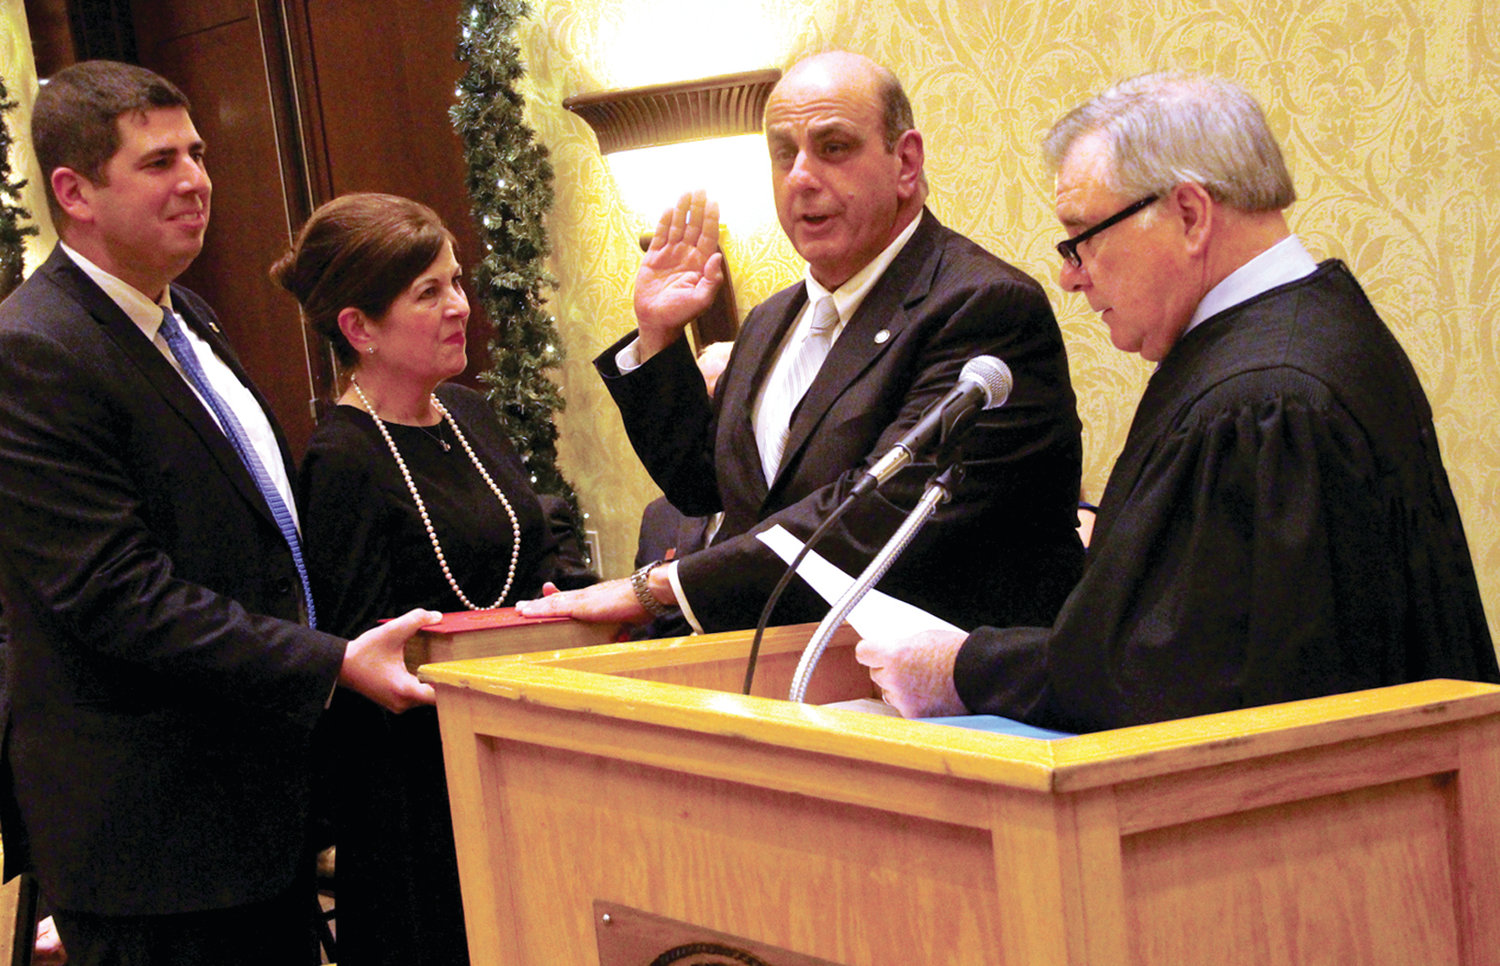 TAKING THE OATH: Associate Supreme Court Justice and former mayor Francis X. Flaherty administers the oath of office to Mayor Solomon as his son, Rep. Joseph Solomon Jr., and wife Cynthia look on.